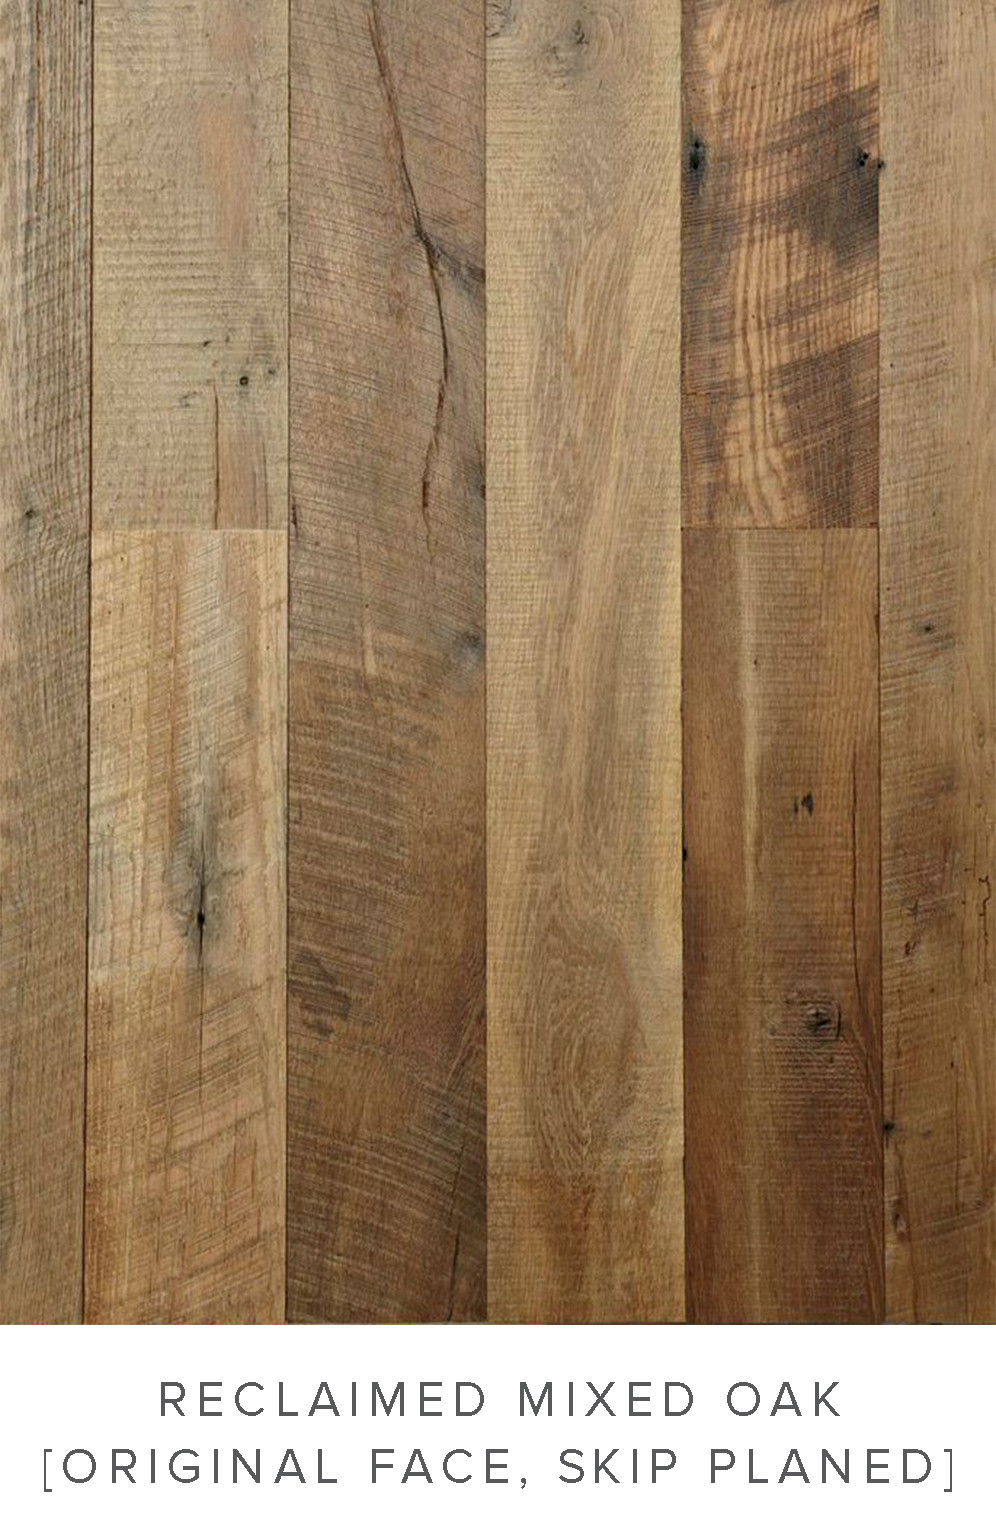 rustic red oak hardwood flooring of extensive range of reclaimed wood flooring all under one roof at the inside reclaimed mixed oak original face skip planed